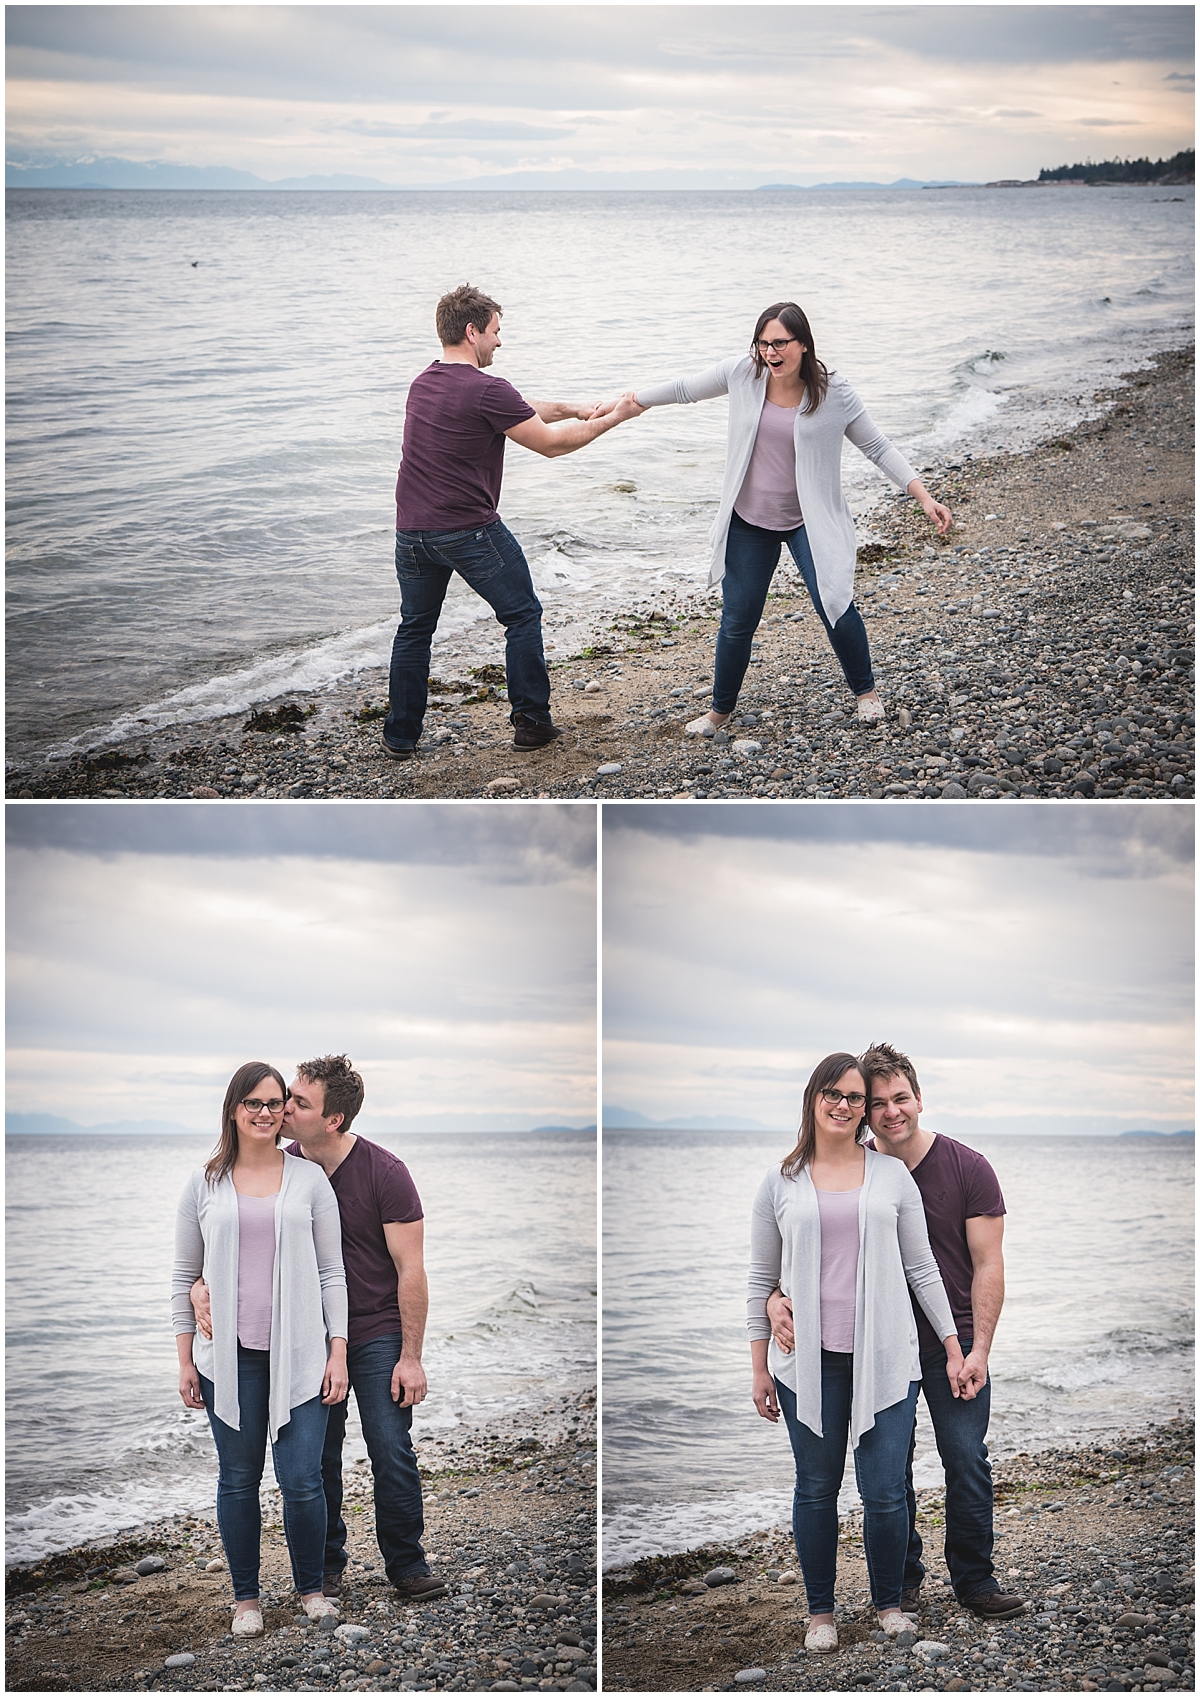 It's been 5 years and he's only tried to throw her in the ocean once (that I know of...) I think that's success!